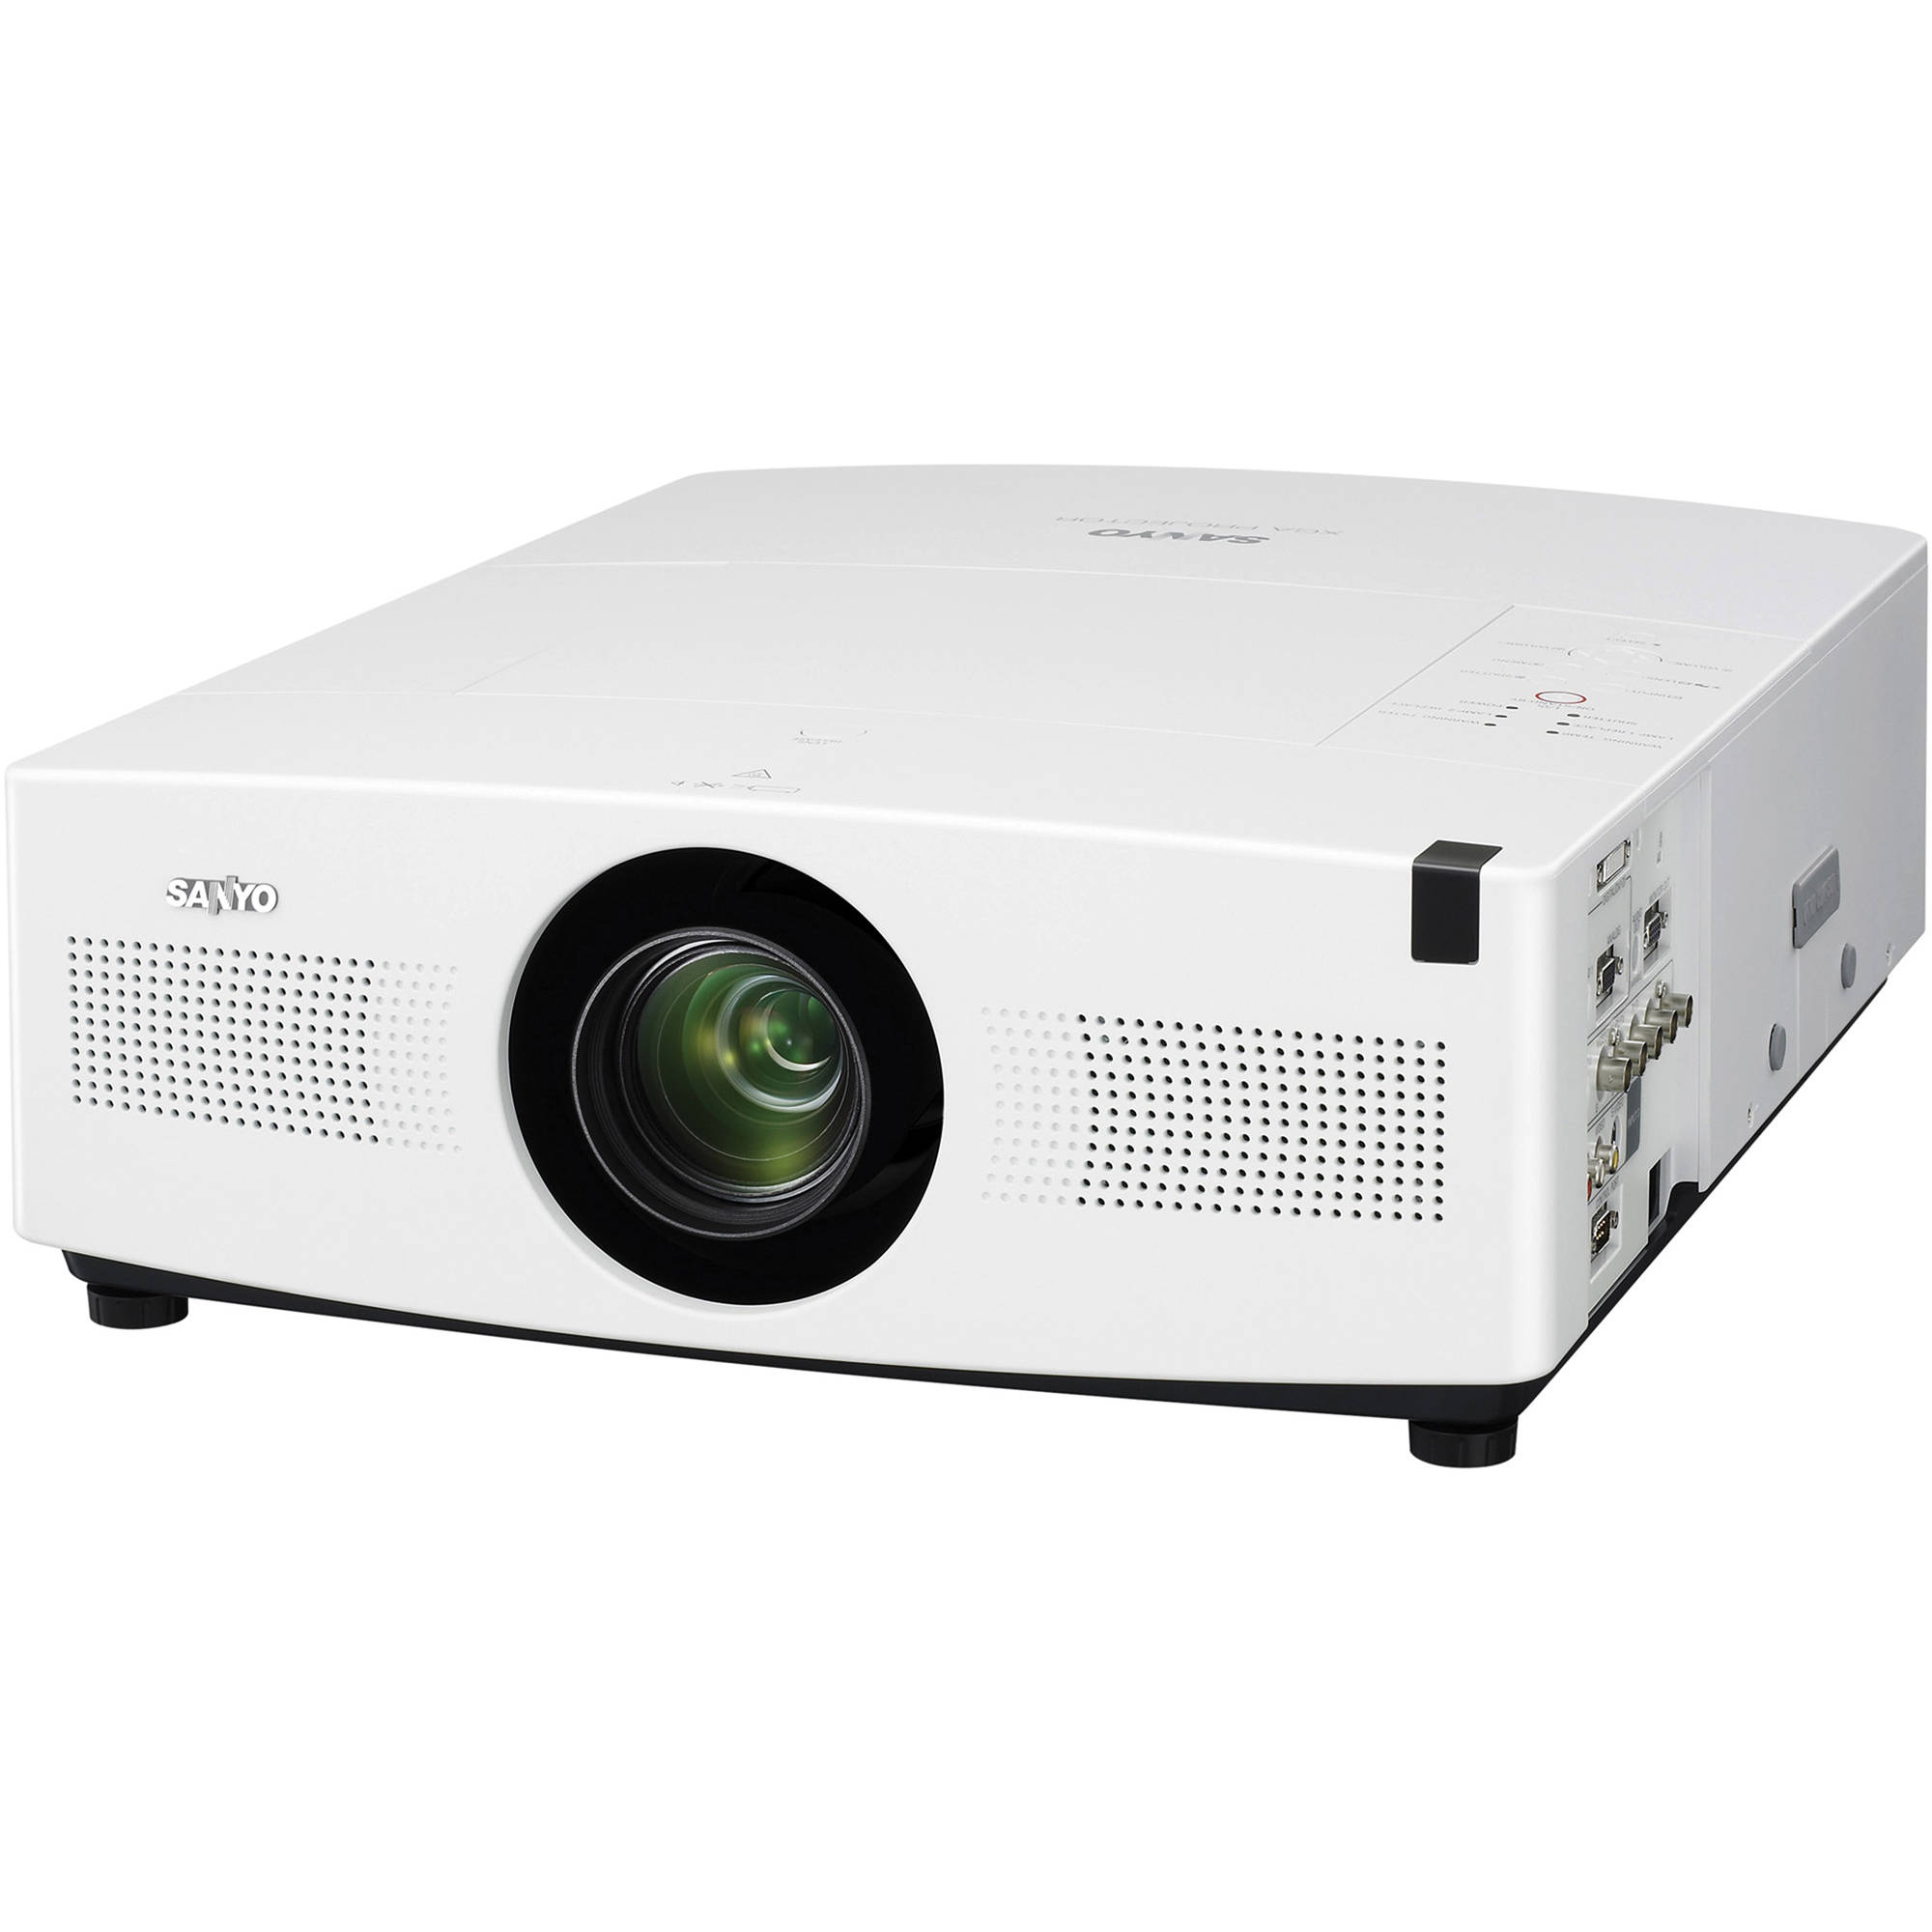 sanyo pro xtrax multiverse projector manual